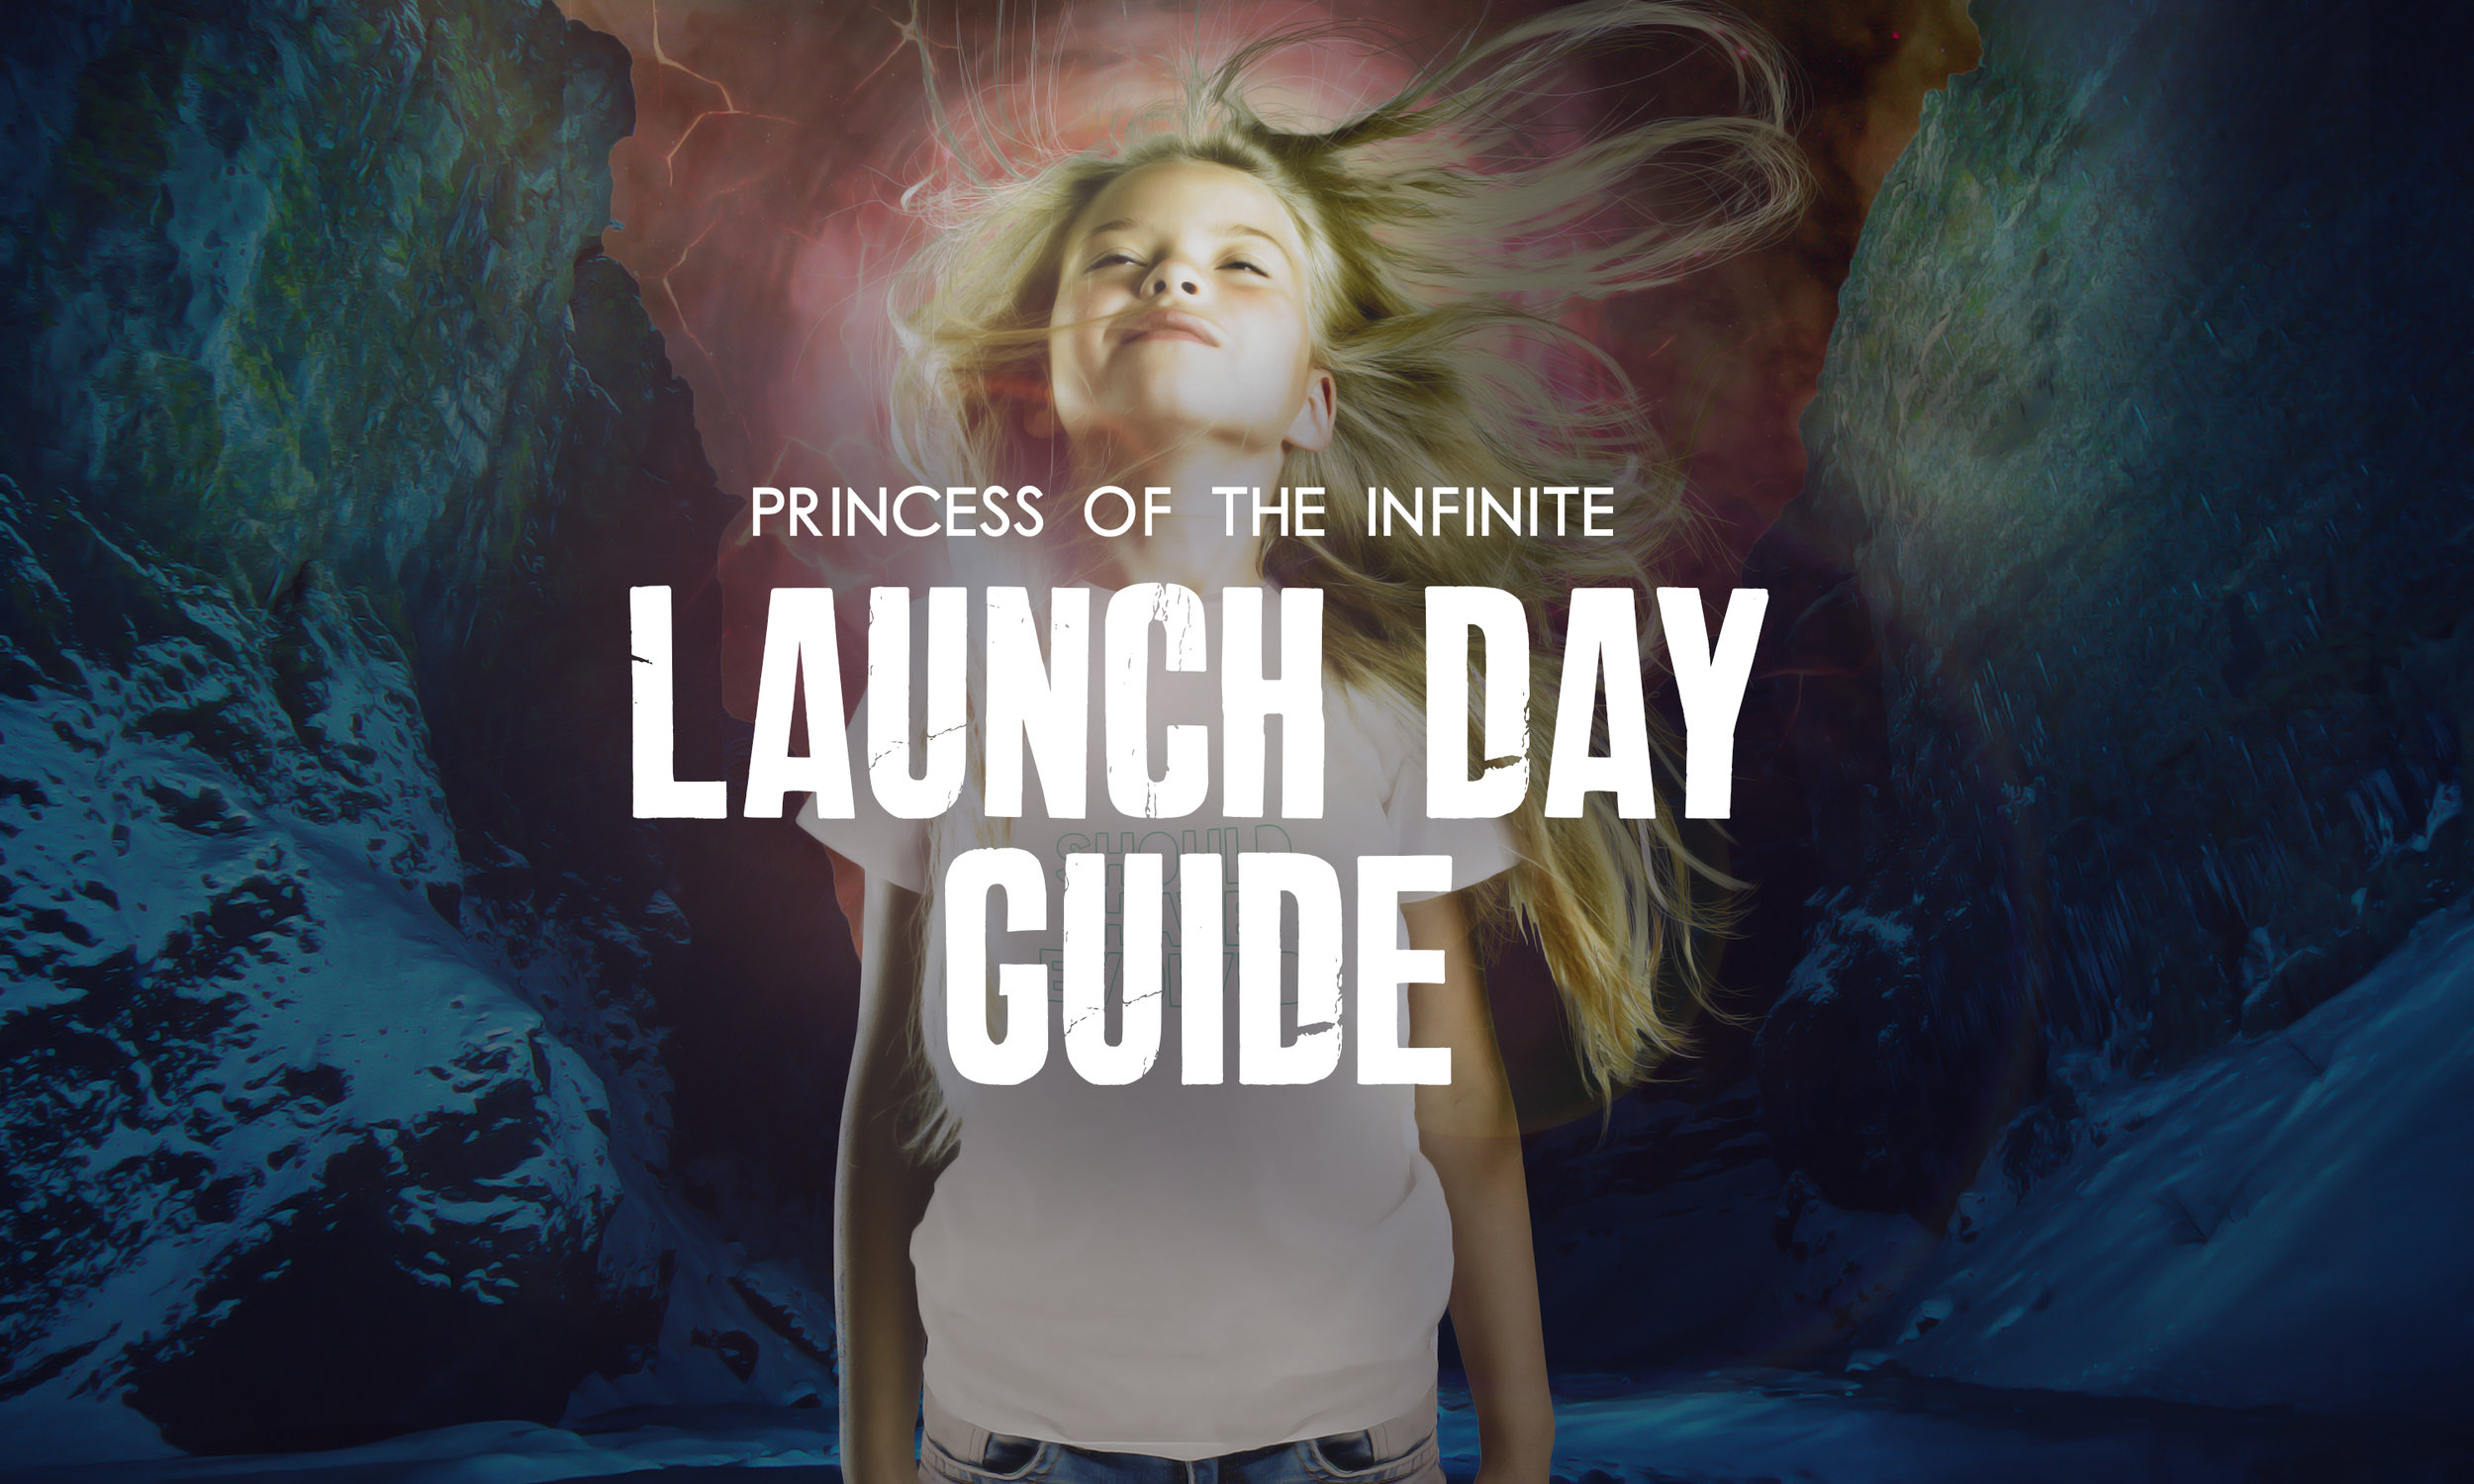 AUGUST 27, 2017 - Everything you need for Launch Day...